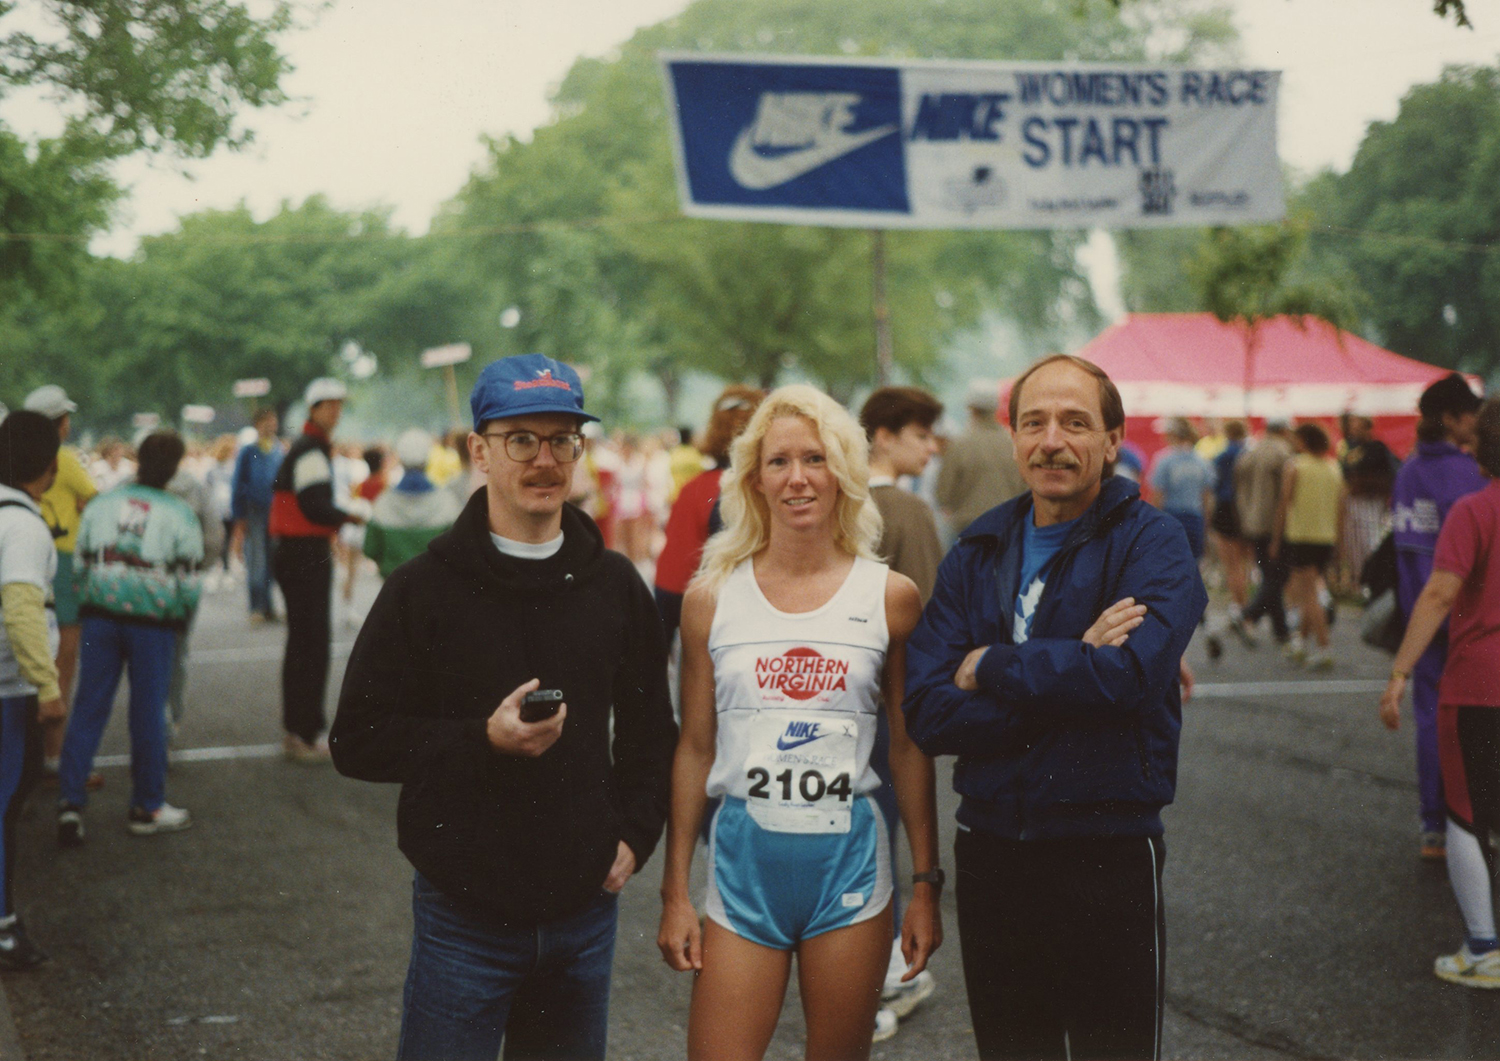 Steve, Win and Doug after the race. Win was a sprinter who played with the distance runners.